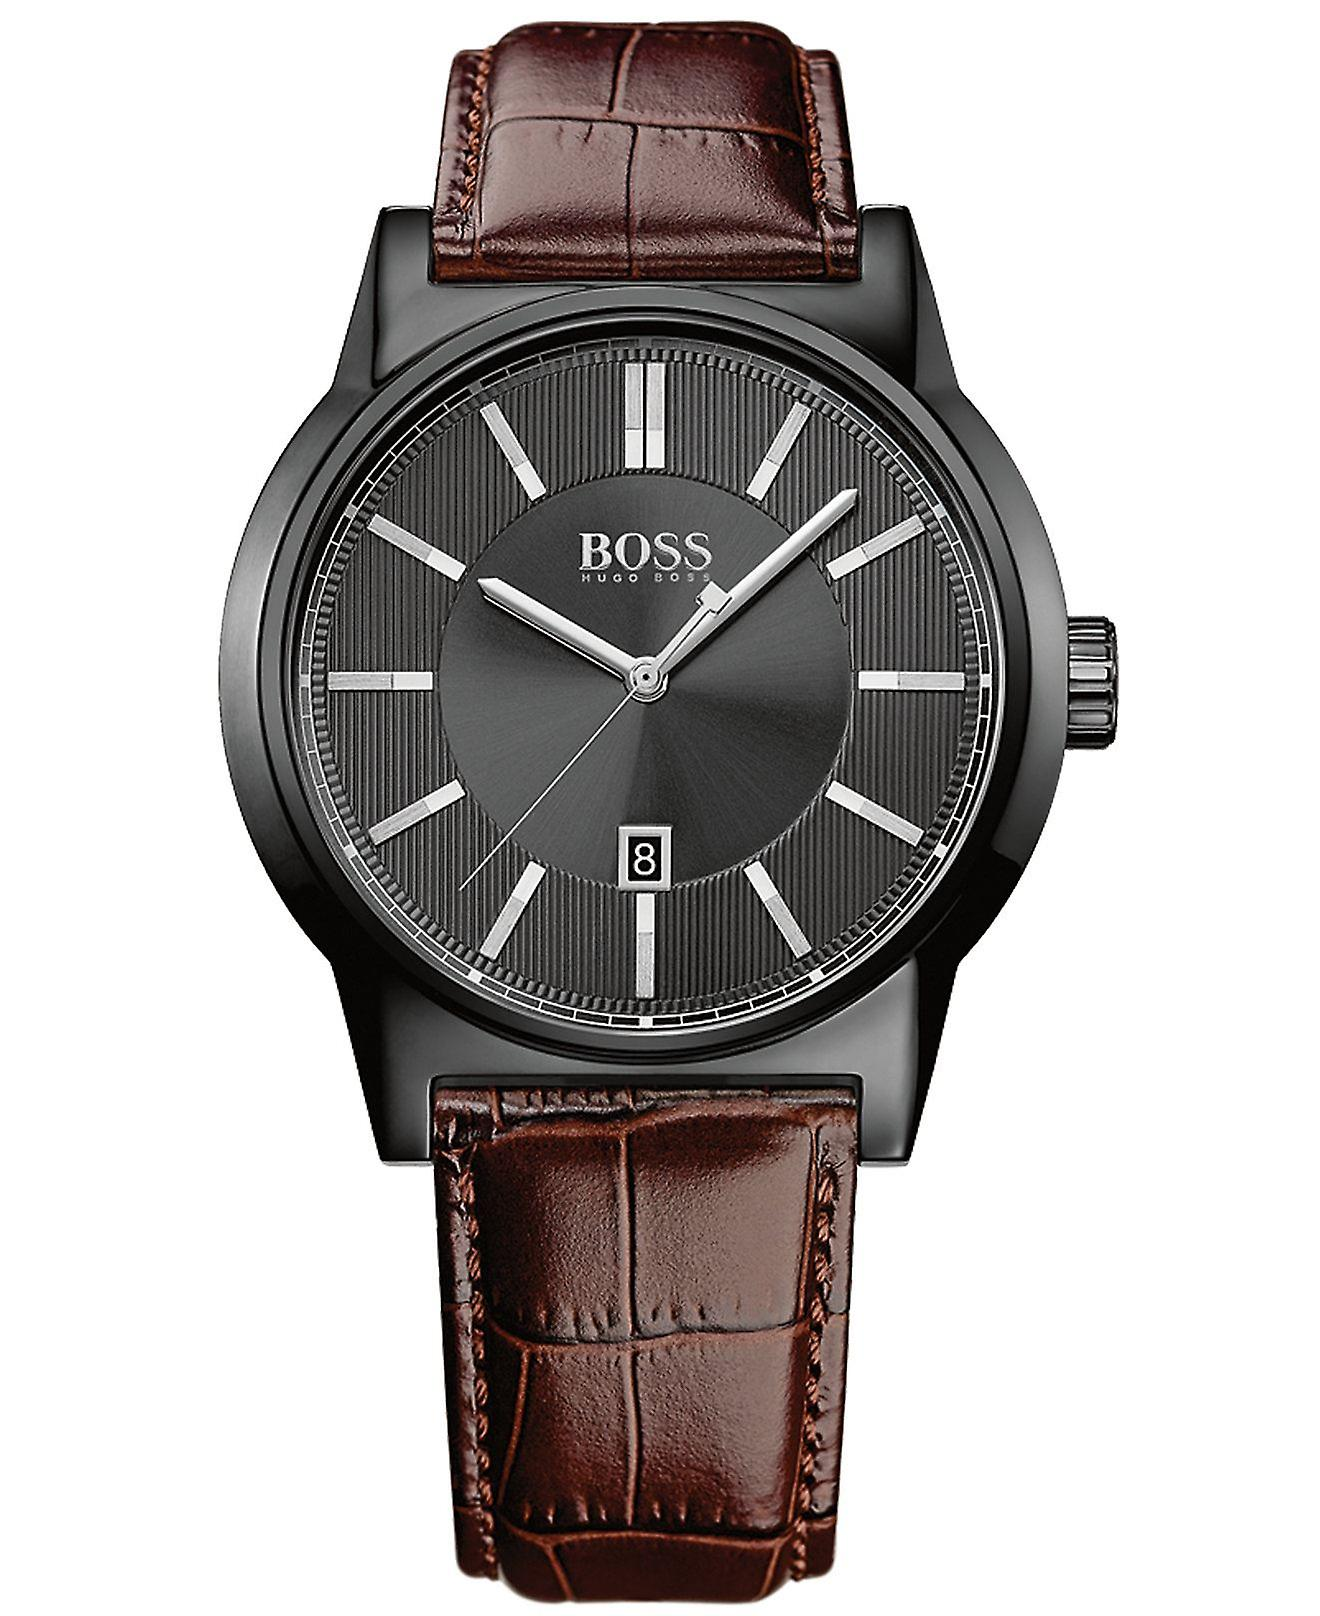 Hugo Boss Mens Boss Architecture Brown Leather Strap Watch HB 1513071